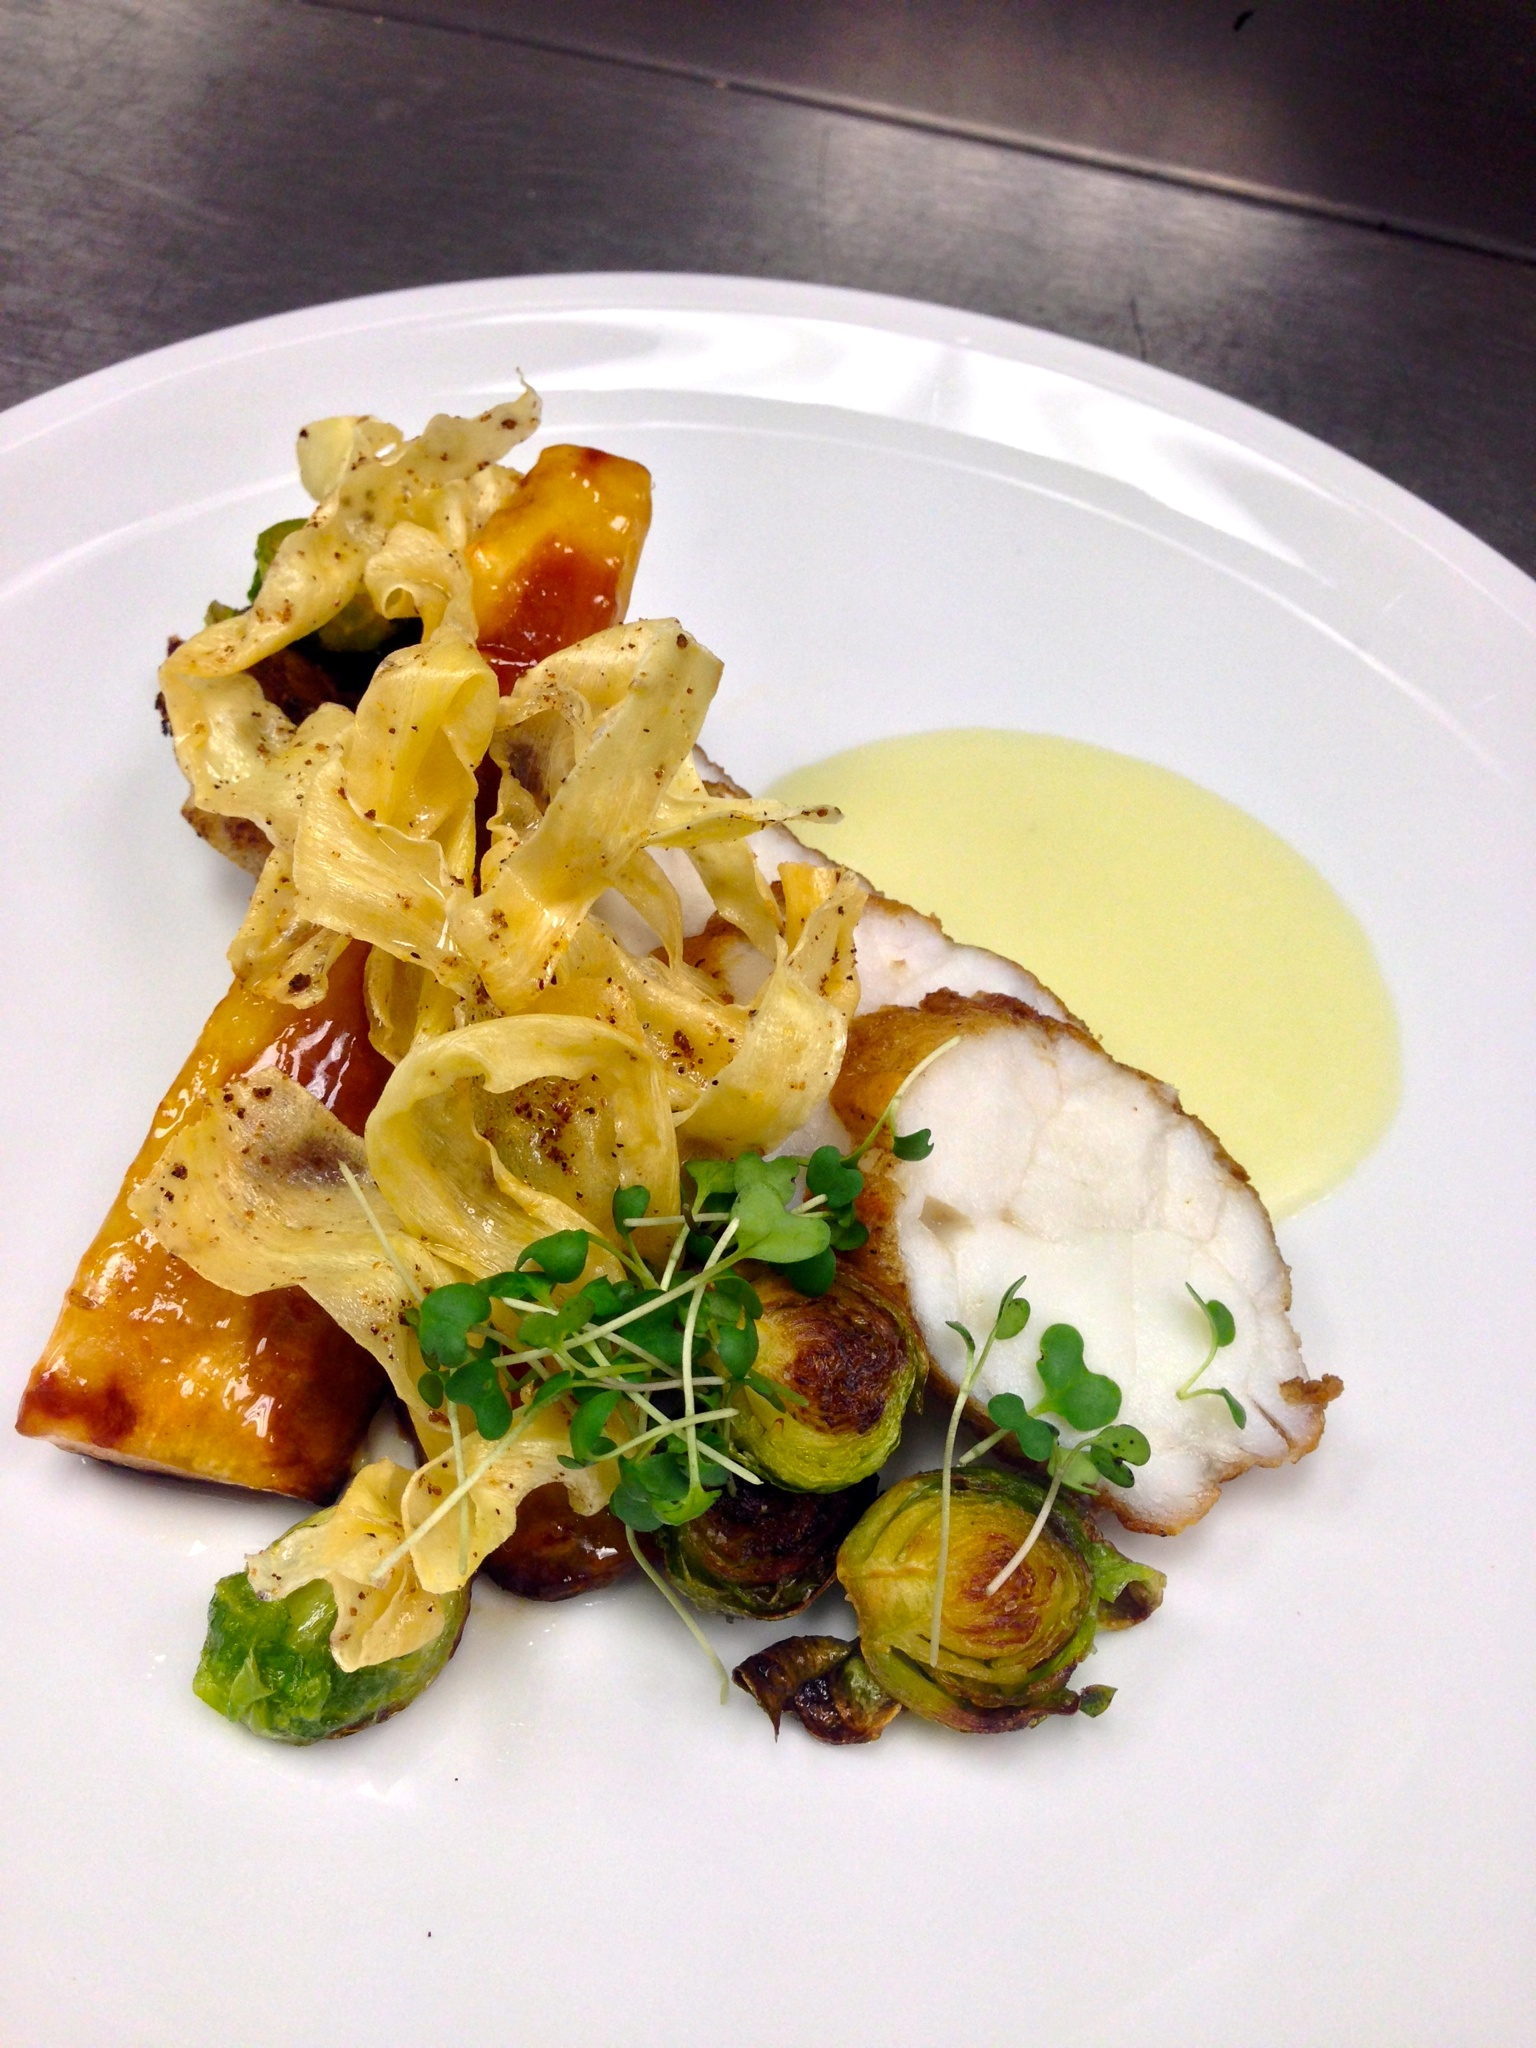 monk fish, parsnip, brussels sprouts, yuzu, juniper